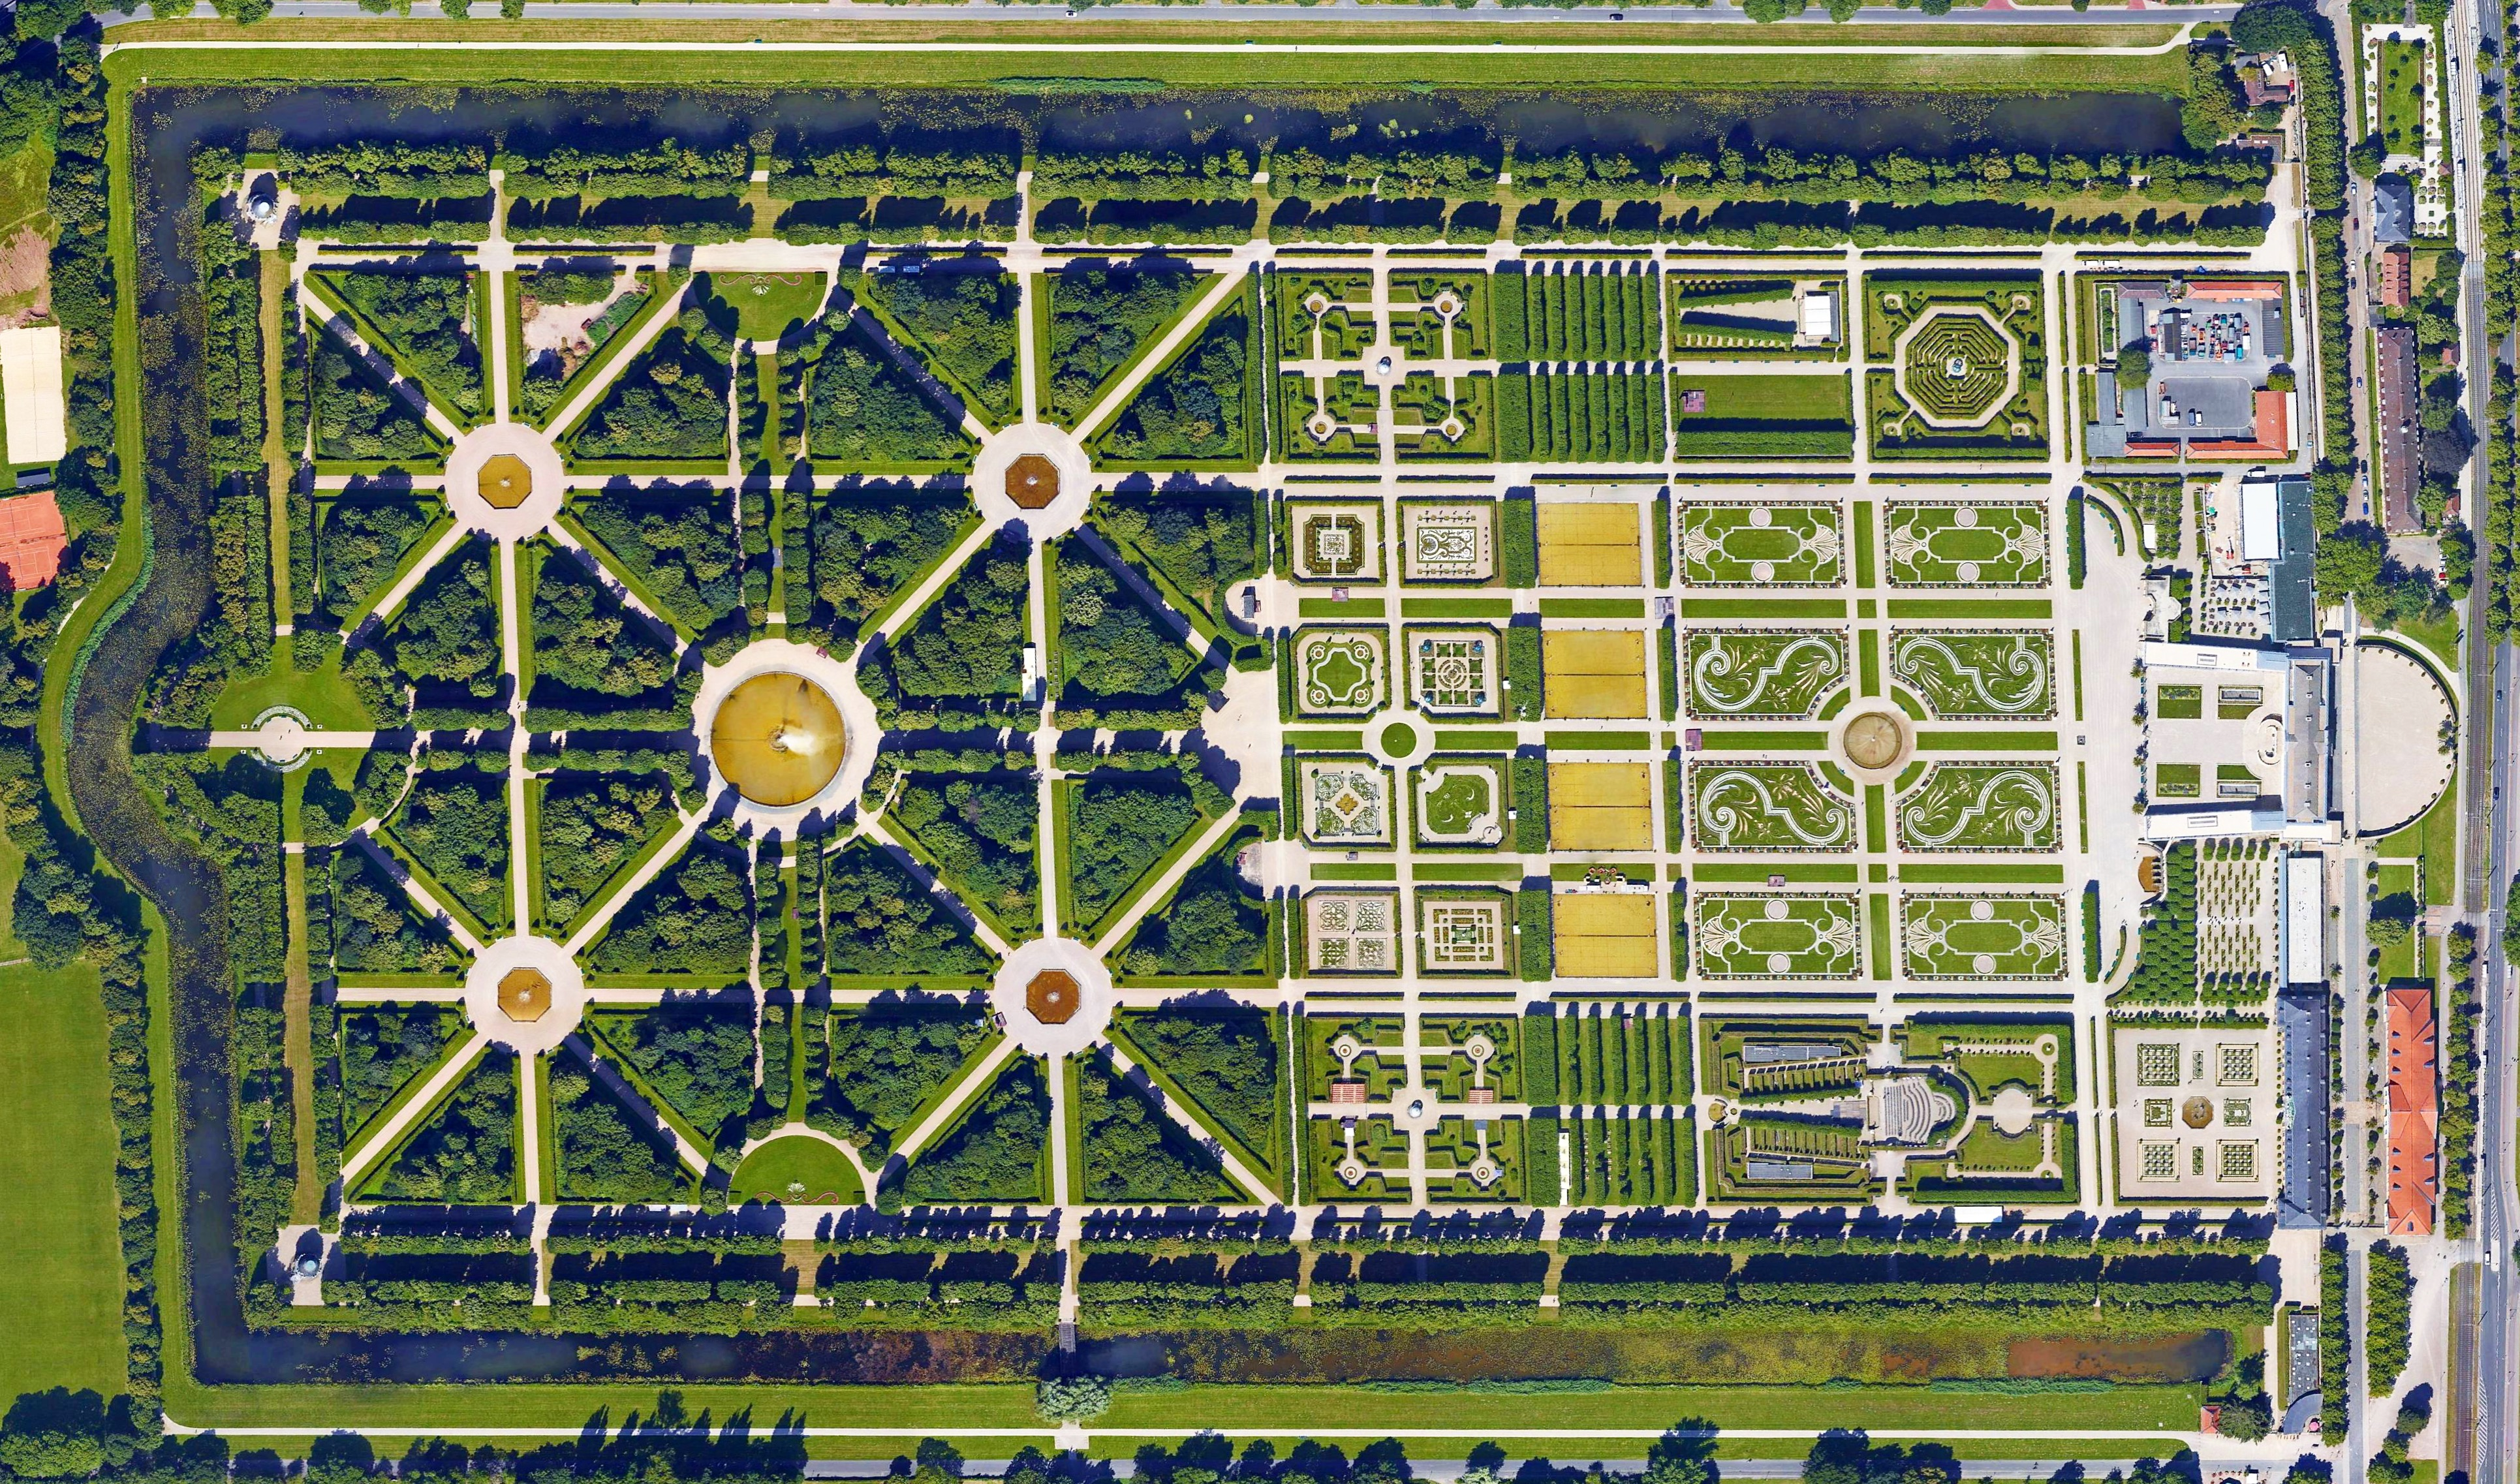 Herrenhausen Gardens Hannover Pictures From Above